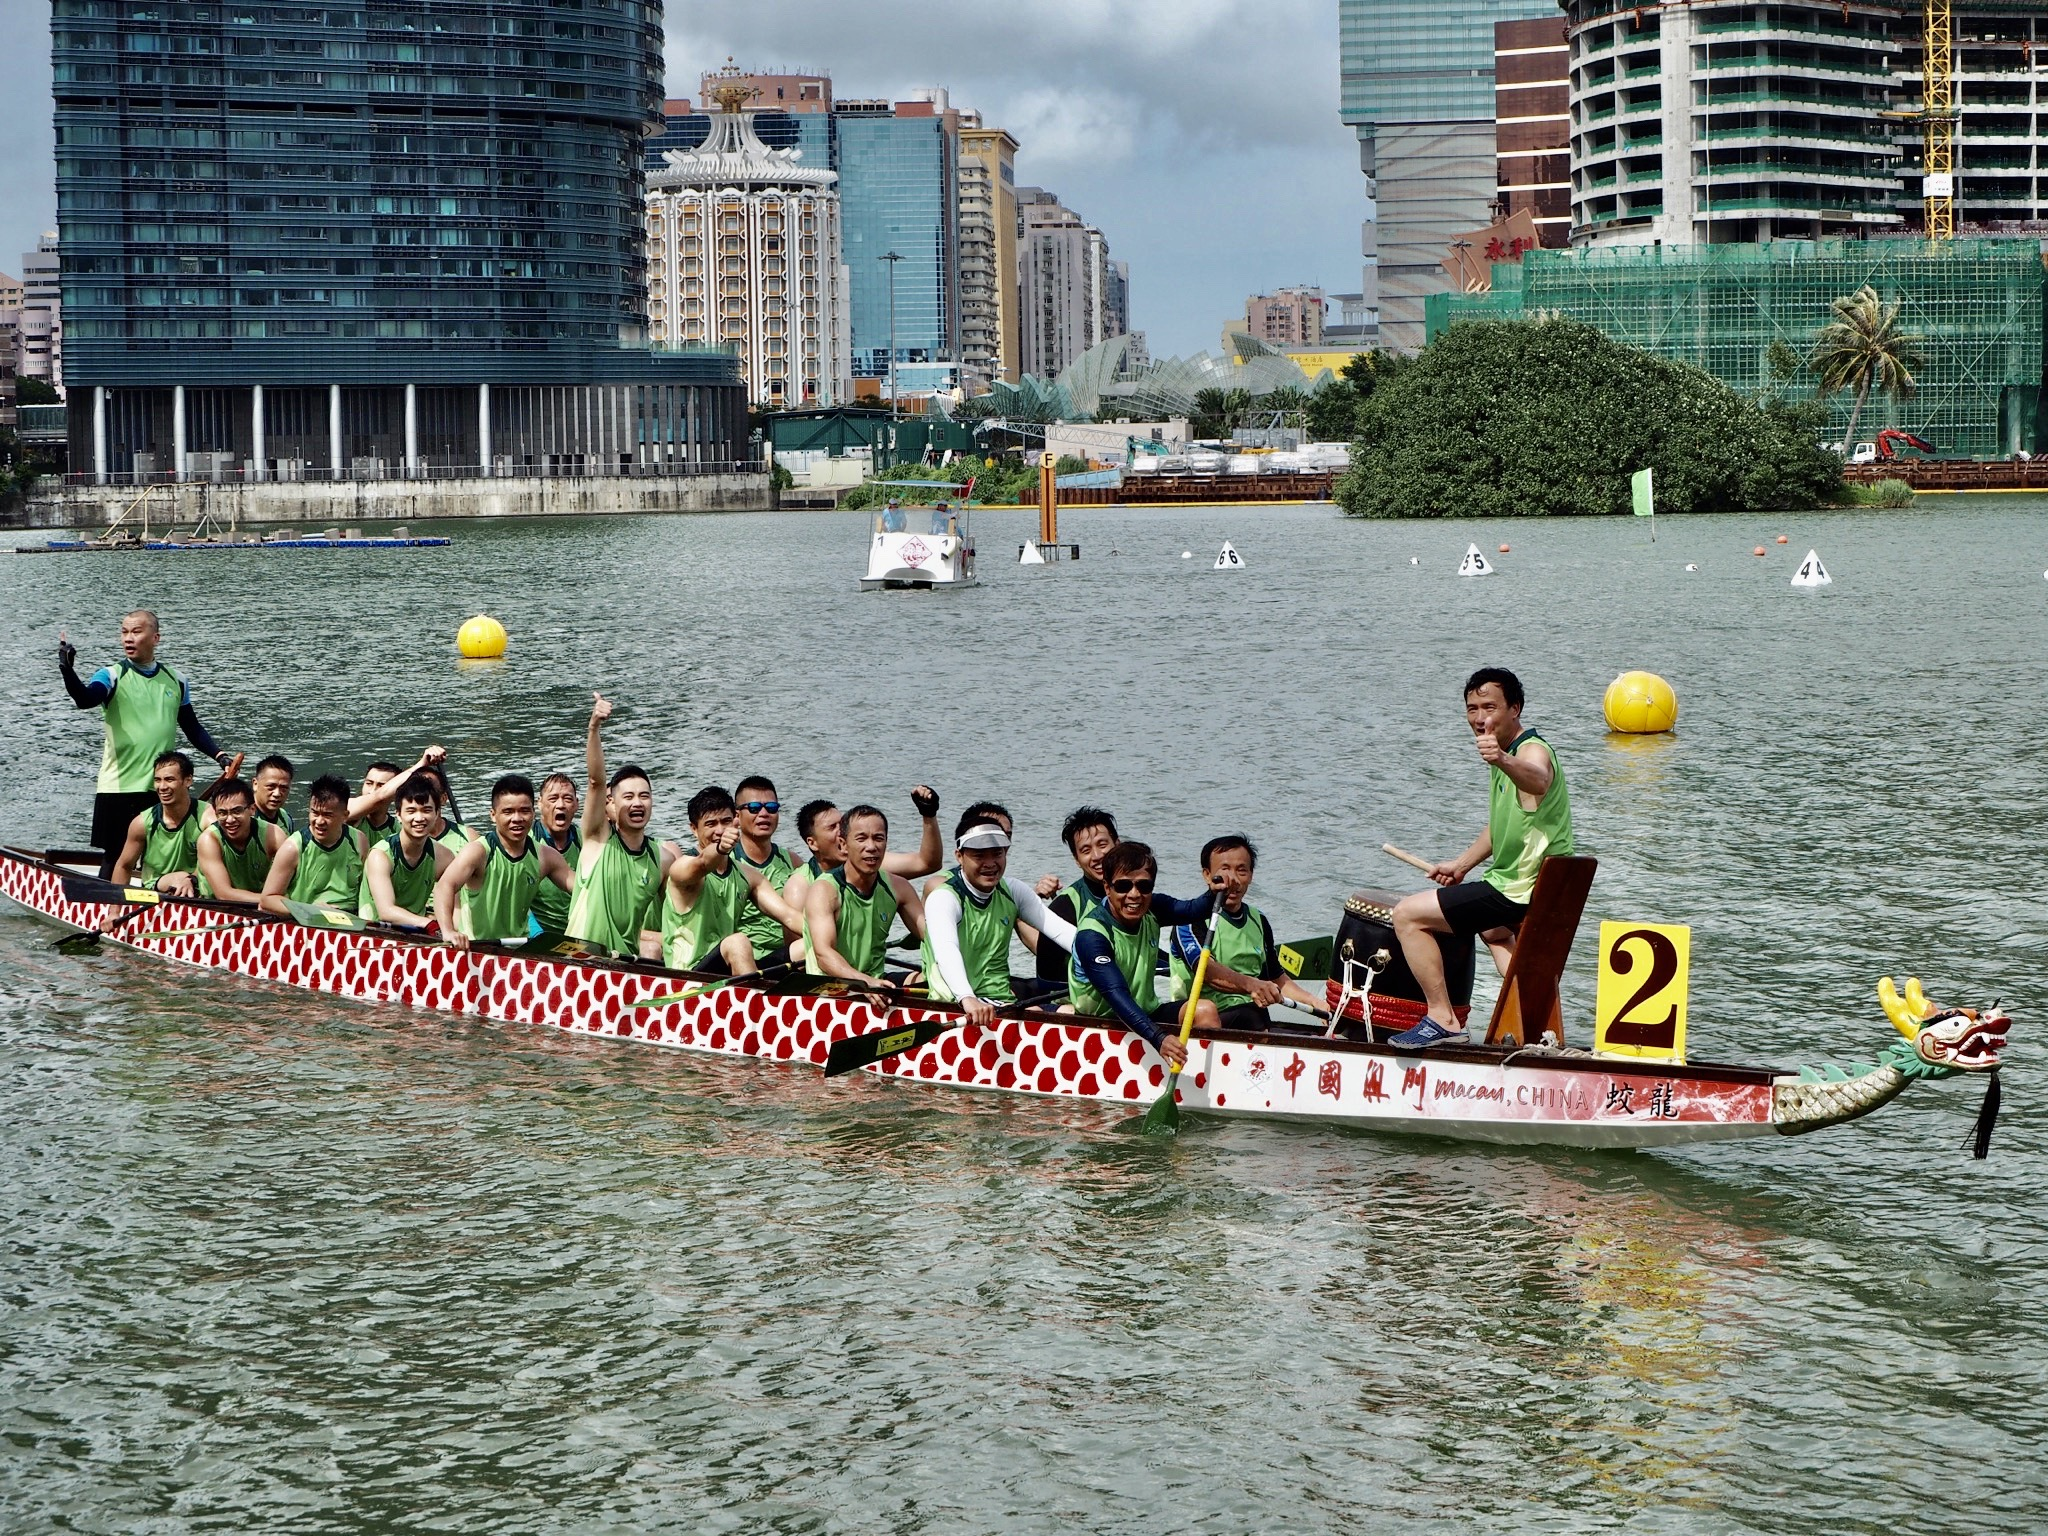 Macao Dragon Boat Races 2020 Light Green Team Smiling to the Camera Macau Lifestyle